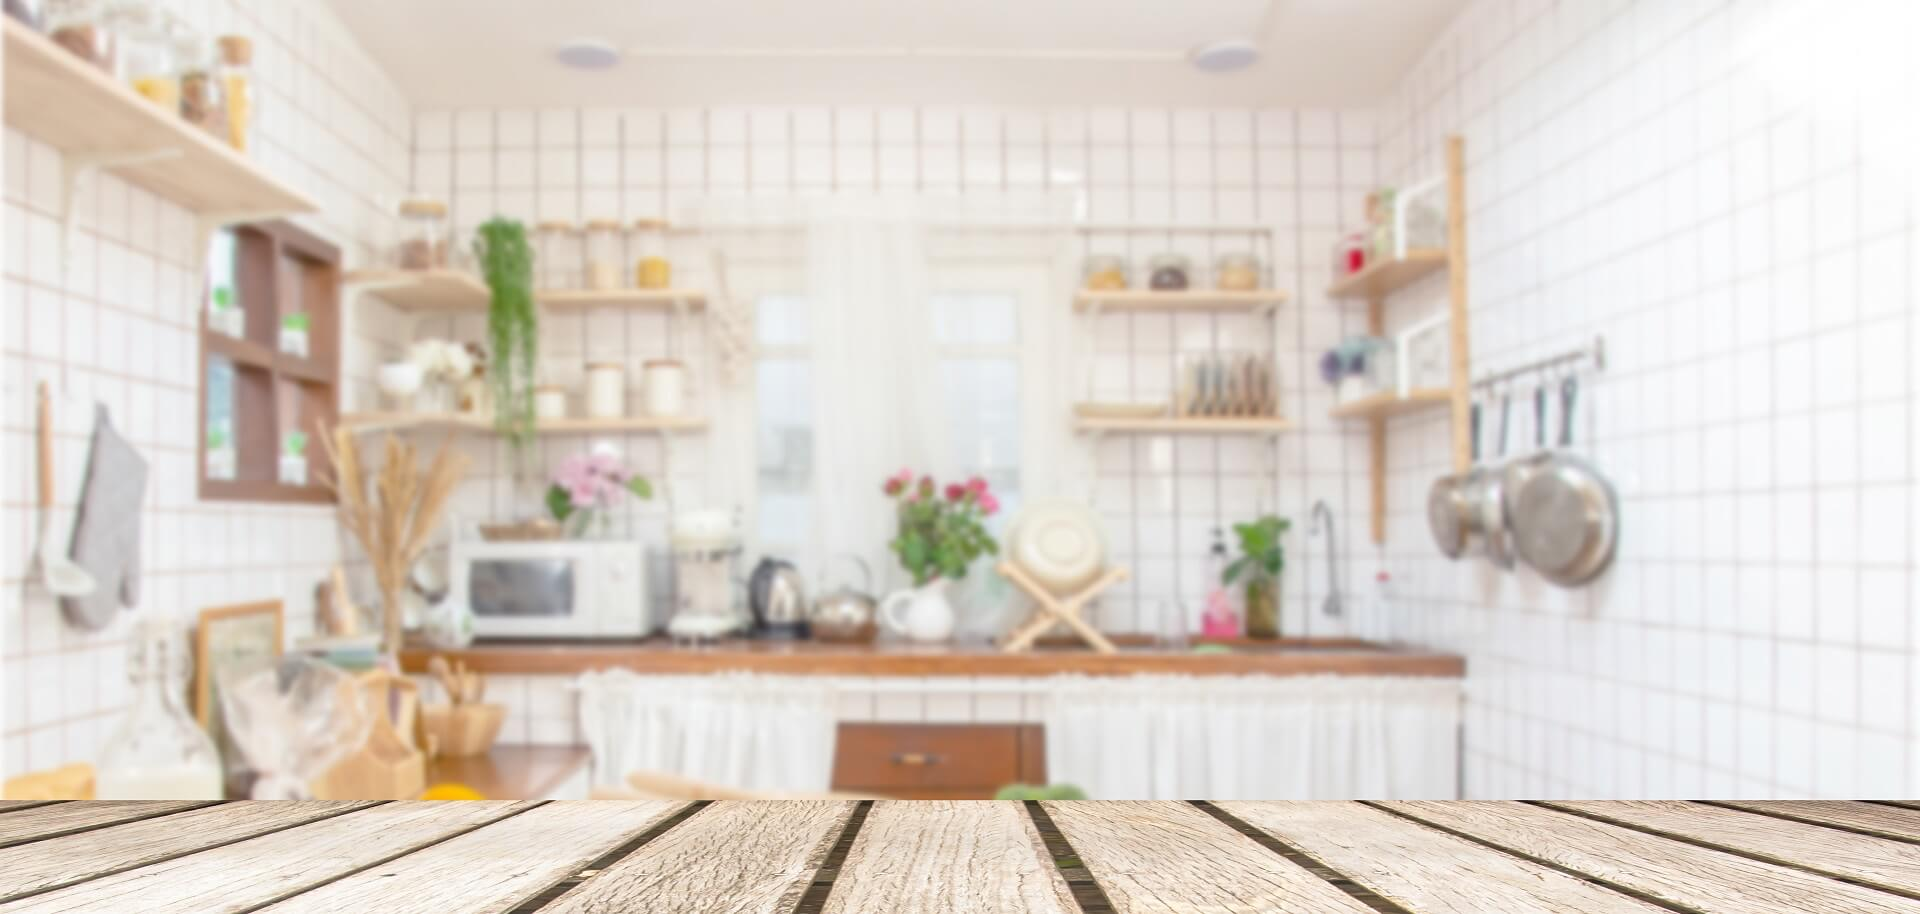 Kitchen trends to avoid in 2021: looking for alternative solutions